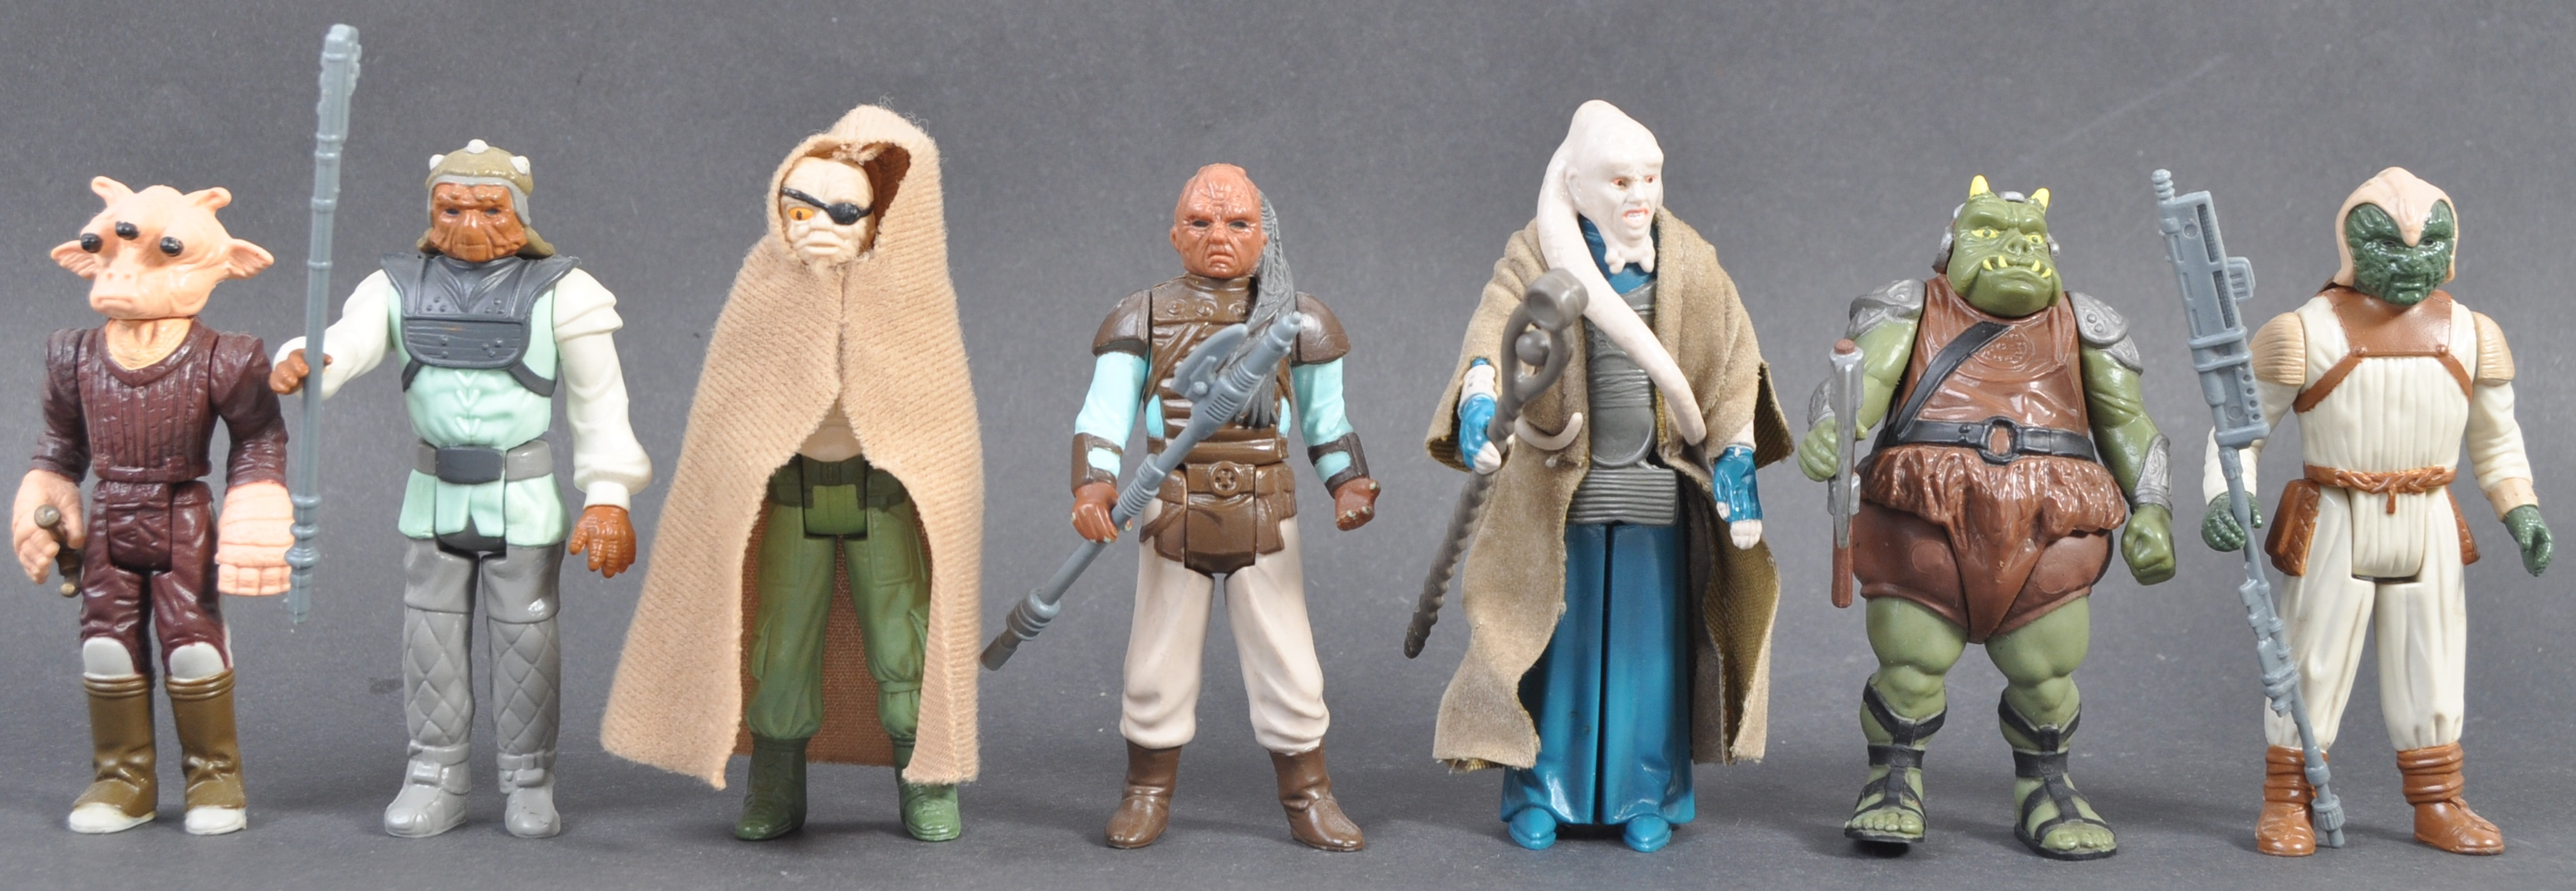 STAR WARS ACTION FIGURES - COLLECTION OF ASSORTED